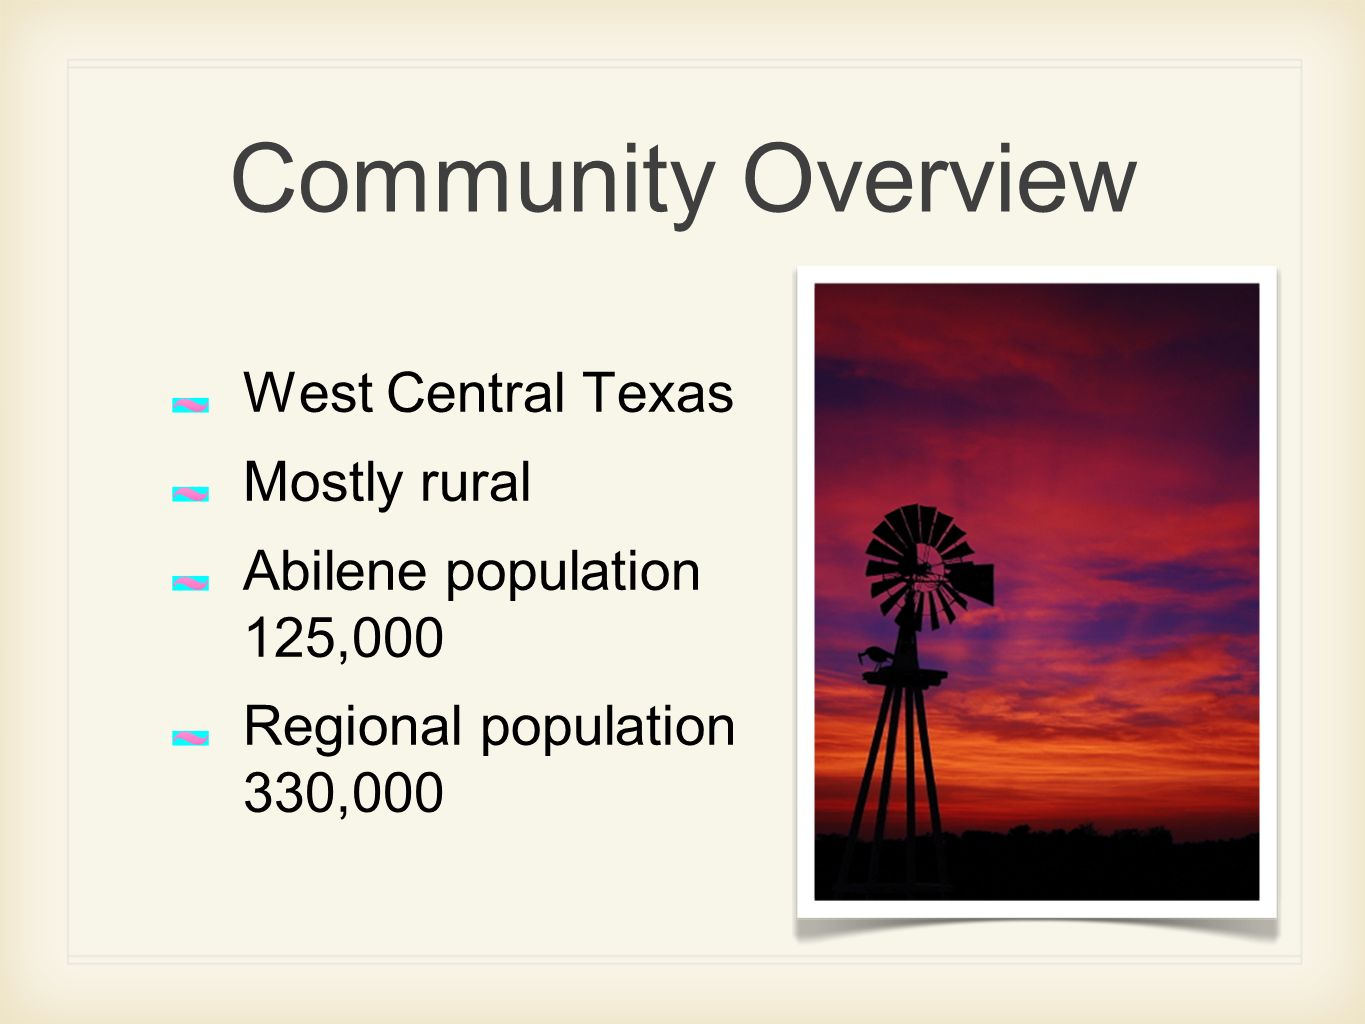 Community Overview West Central Texas Mostly rural Abilene population 125,000 Regional population 330,000